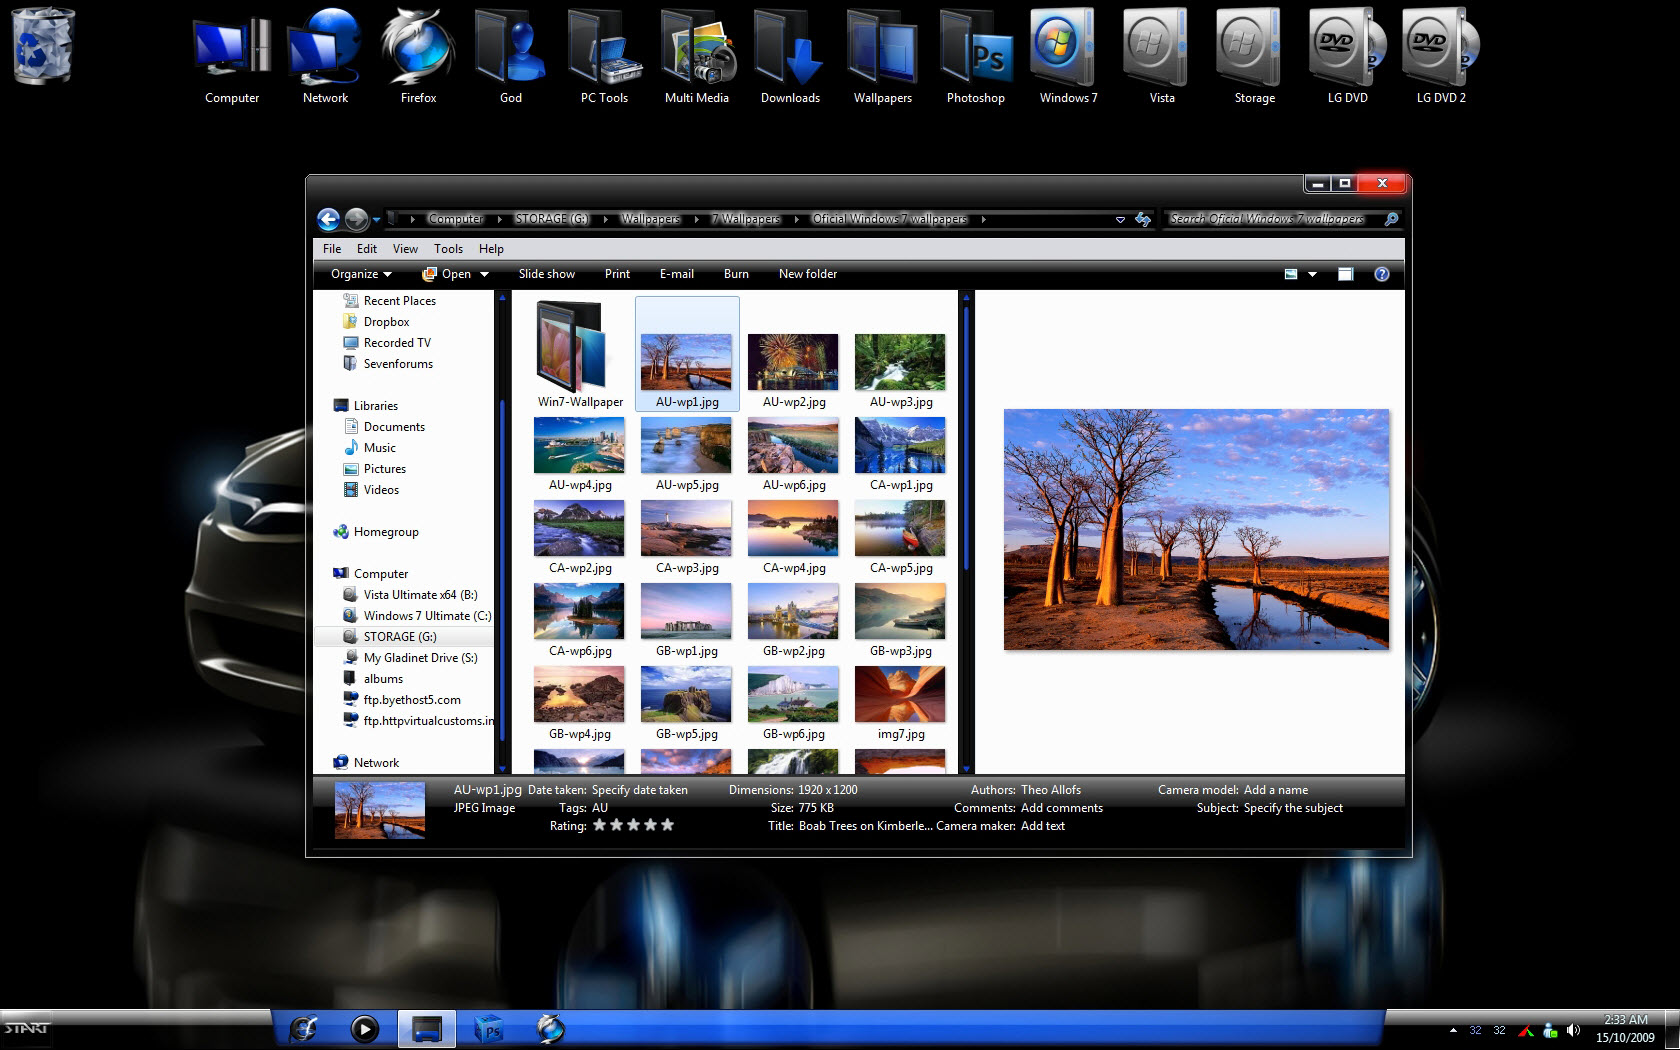 NEON WINDOWS 7 THEME @ 50+ Stunning Windows 7 Desktop Themes